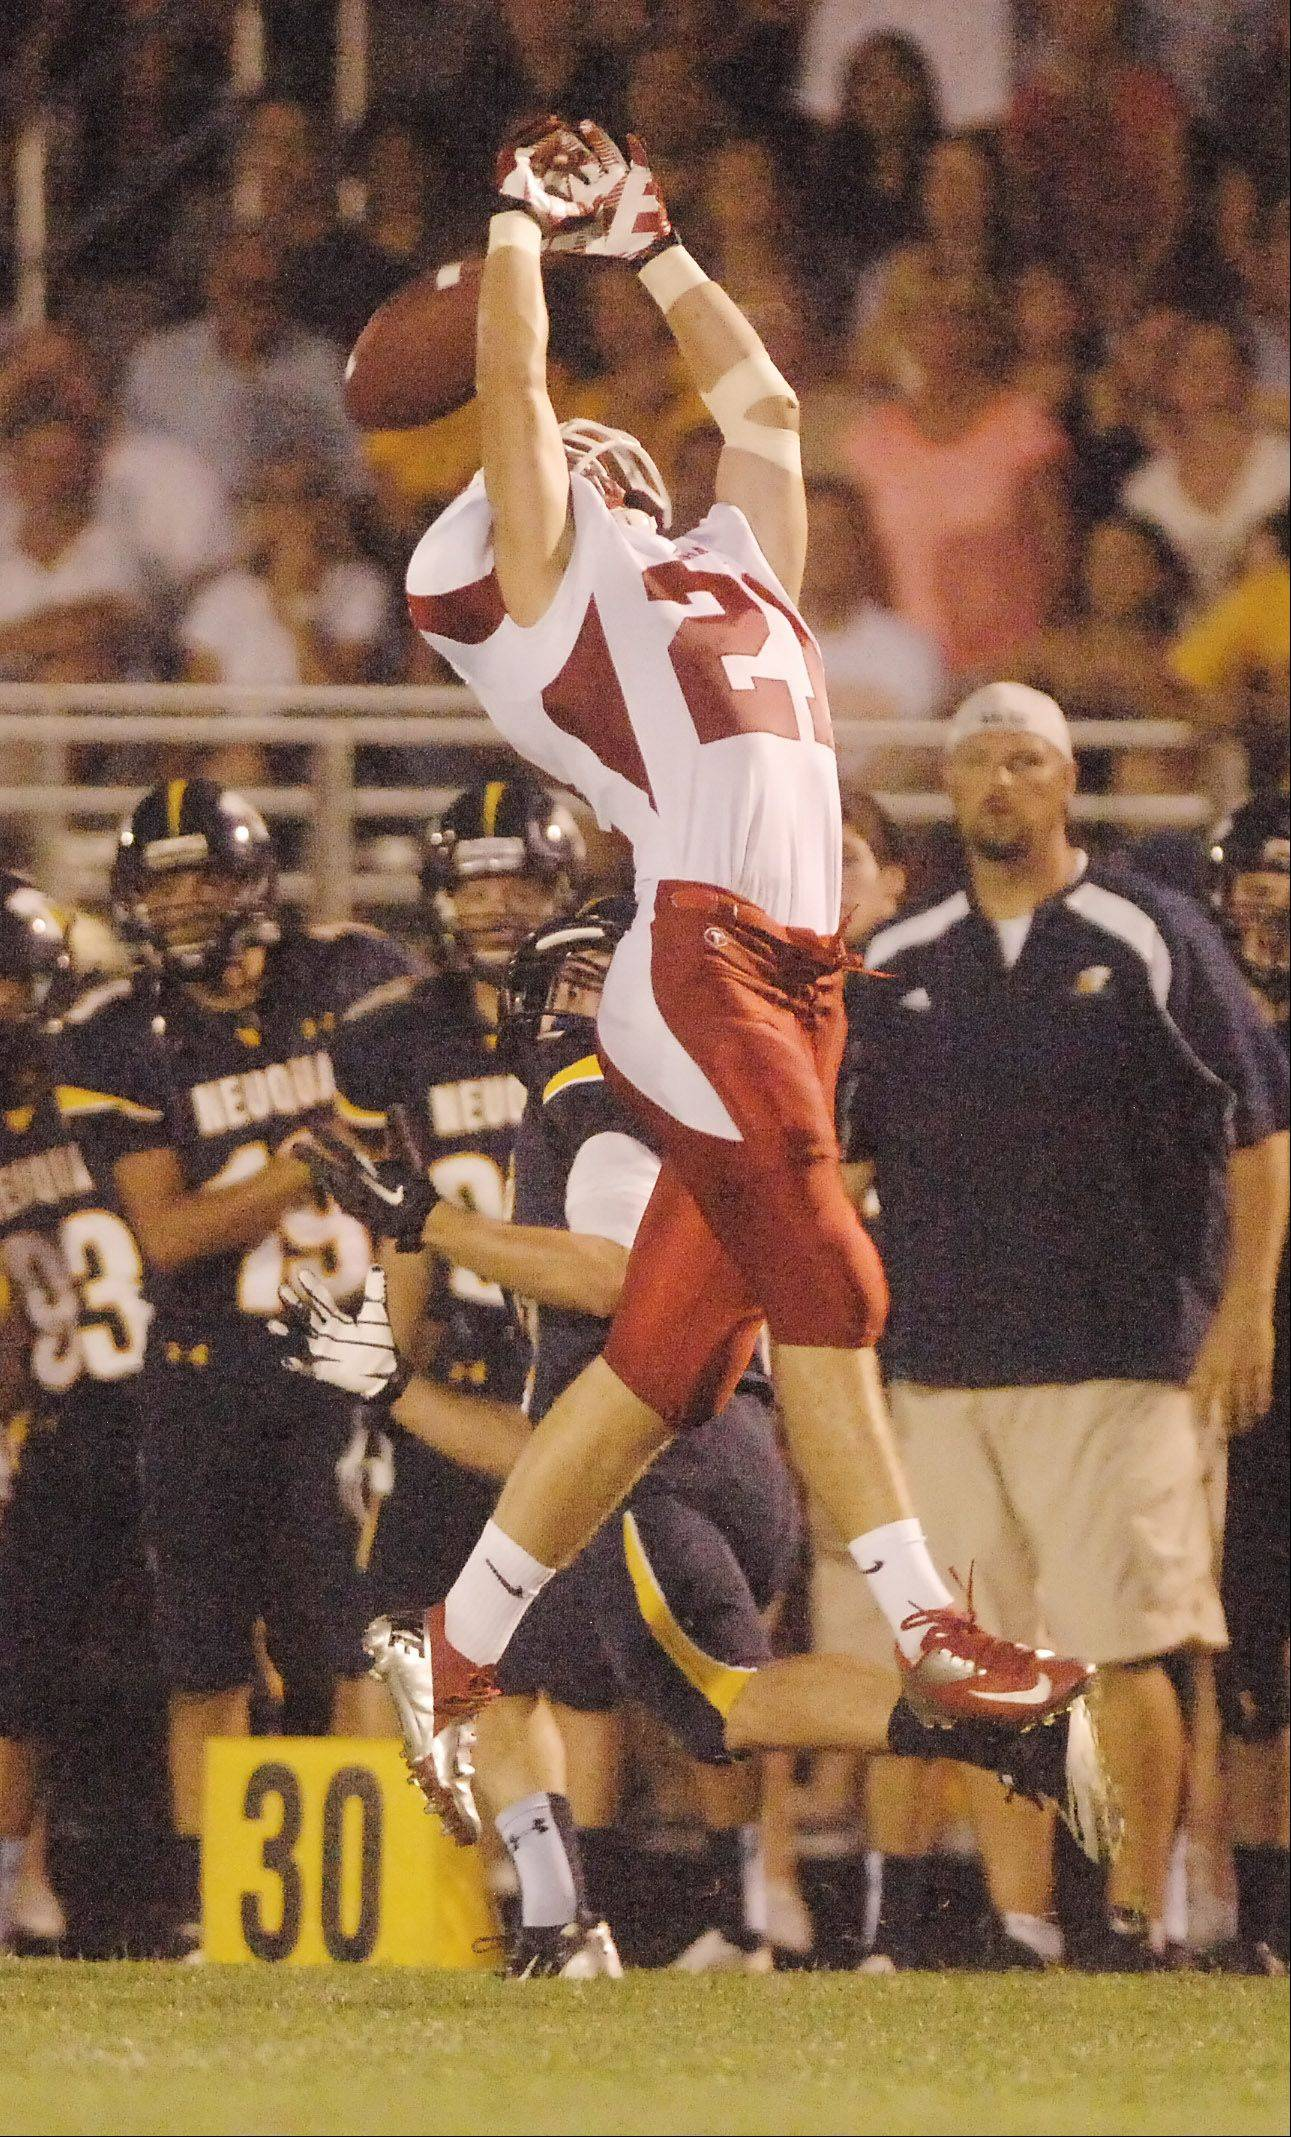 Justin Markham of Naperville Central tries for a pass.